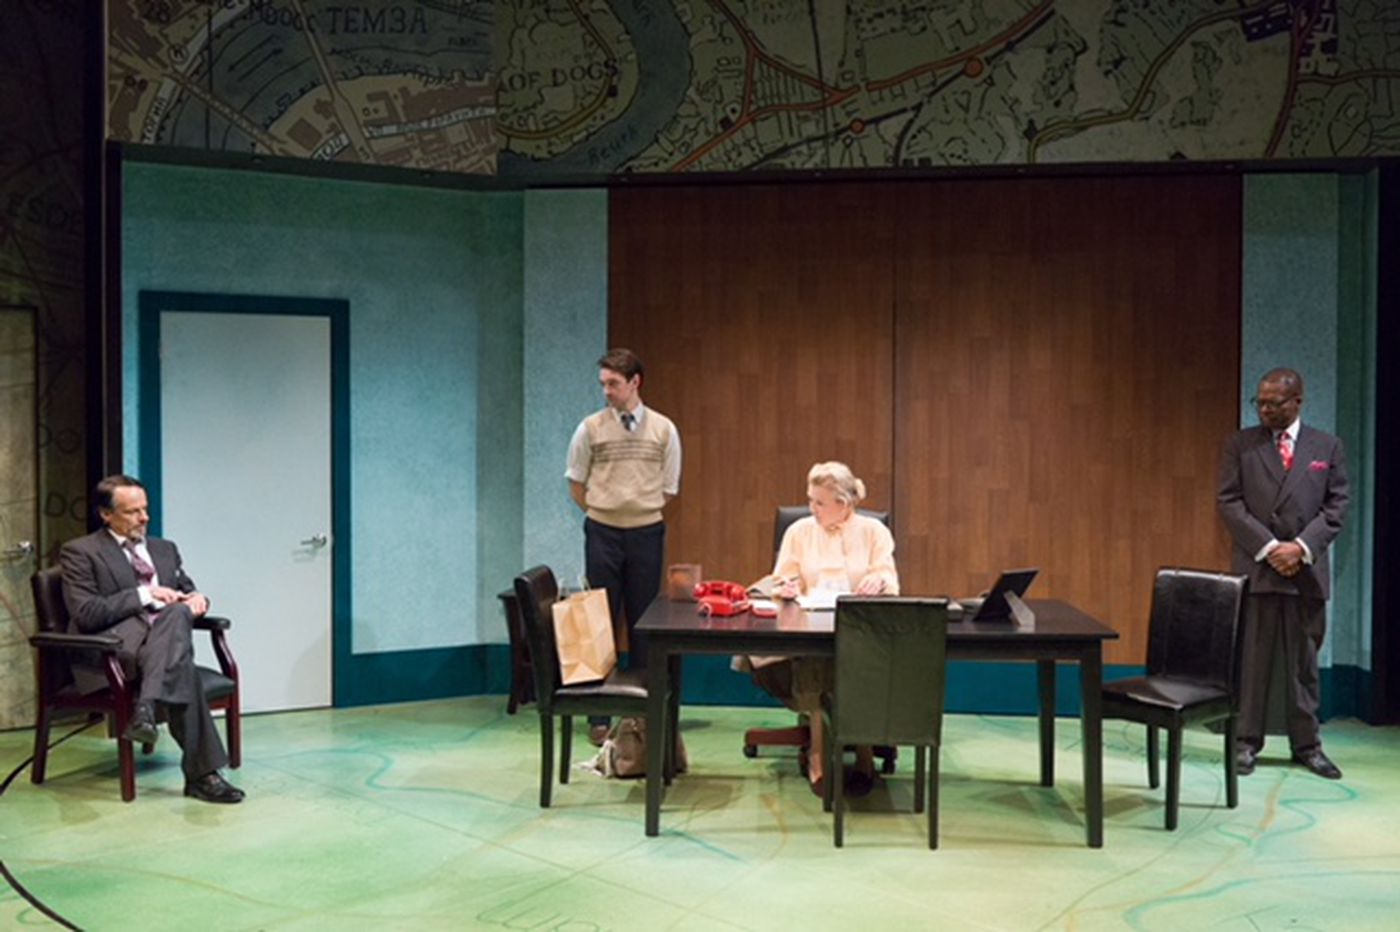 Stoppard's 'Hapgood' at the Lantern Theater: Motherhood, espionage, and quantum mechanics